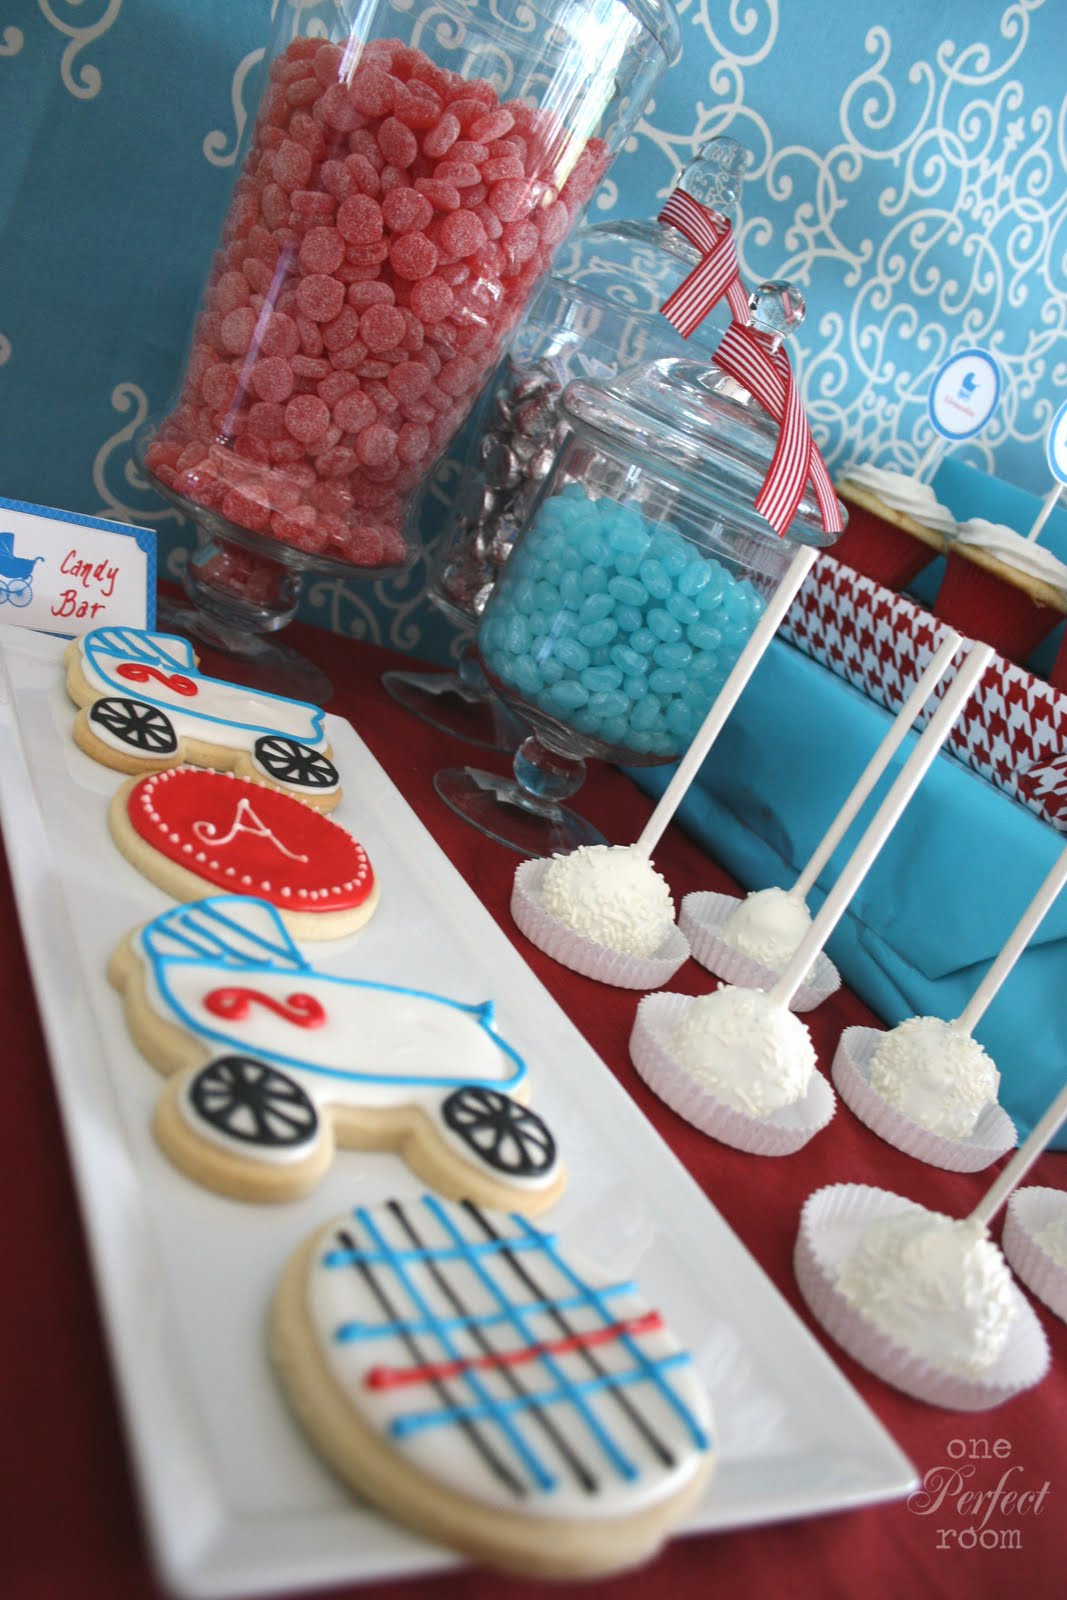 One Perfect Room : Vintage stroller baby shower